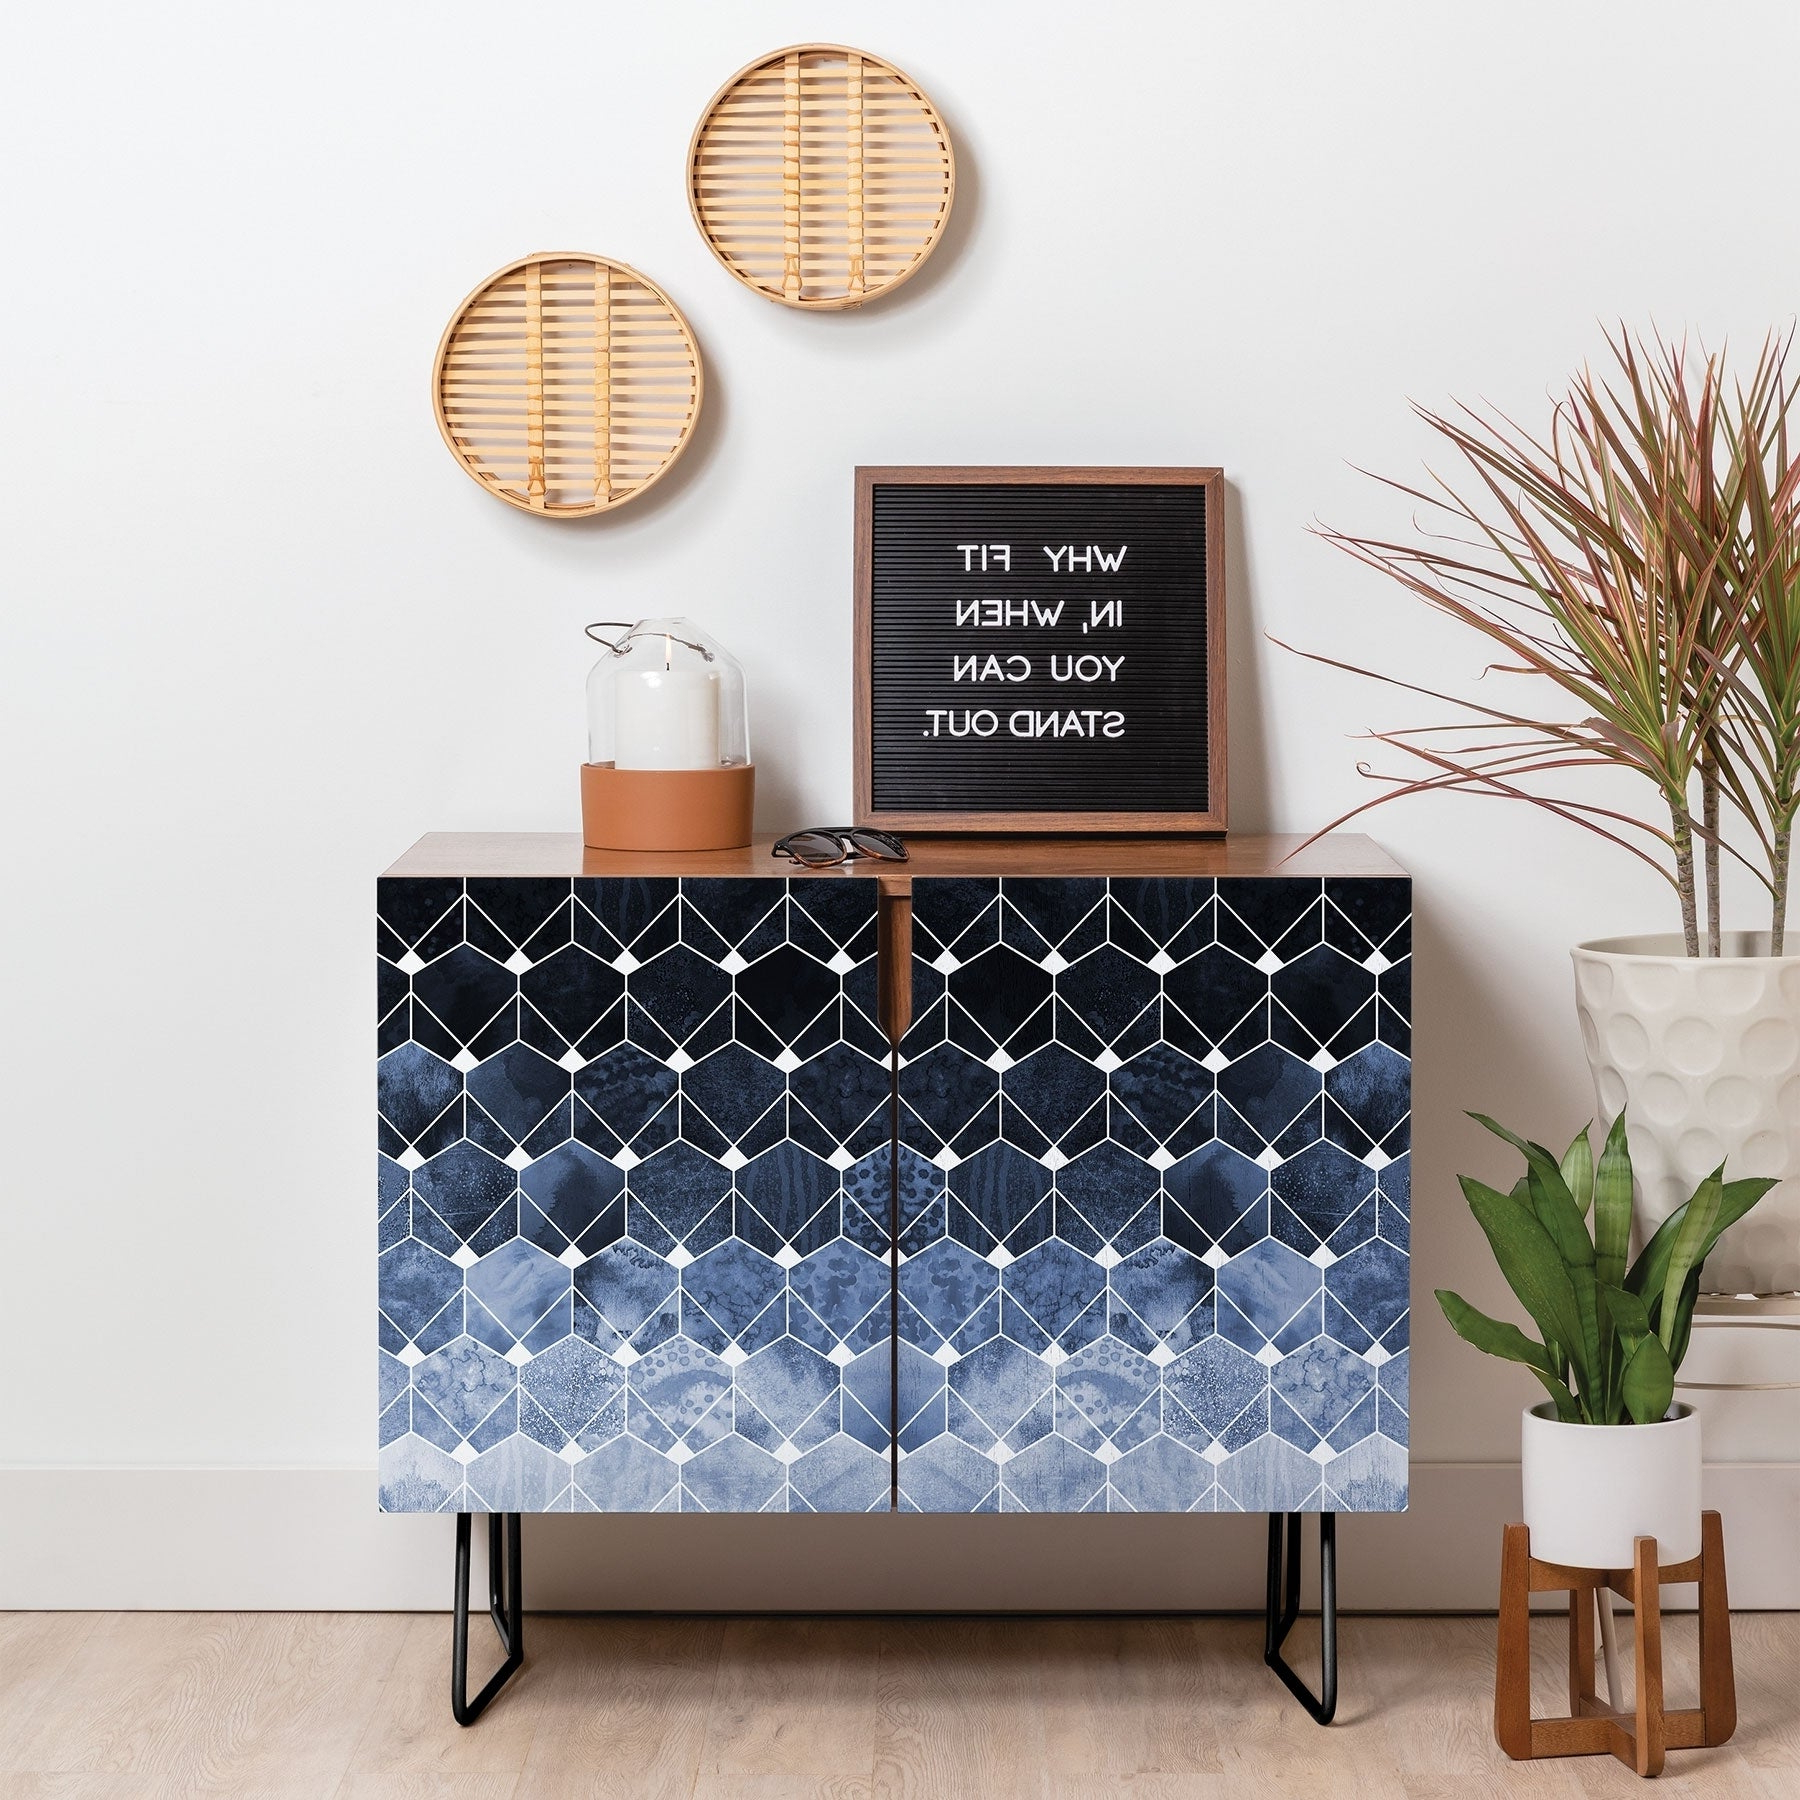 Deny Designs Blue Hexagons And Diamonds Credenza (Birch Or Walnut, 2 Leg  Options) Intended For Line Geo Credenzas (View 1 of 20)